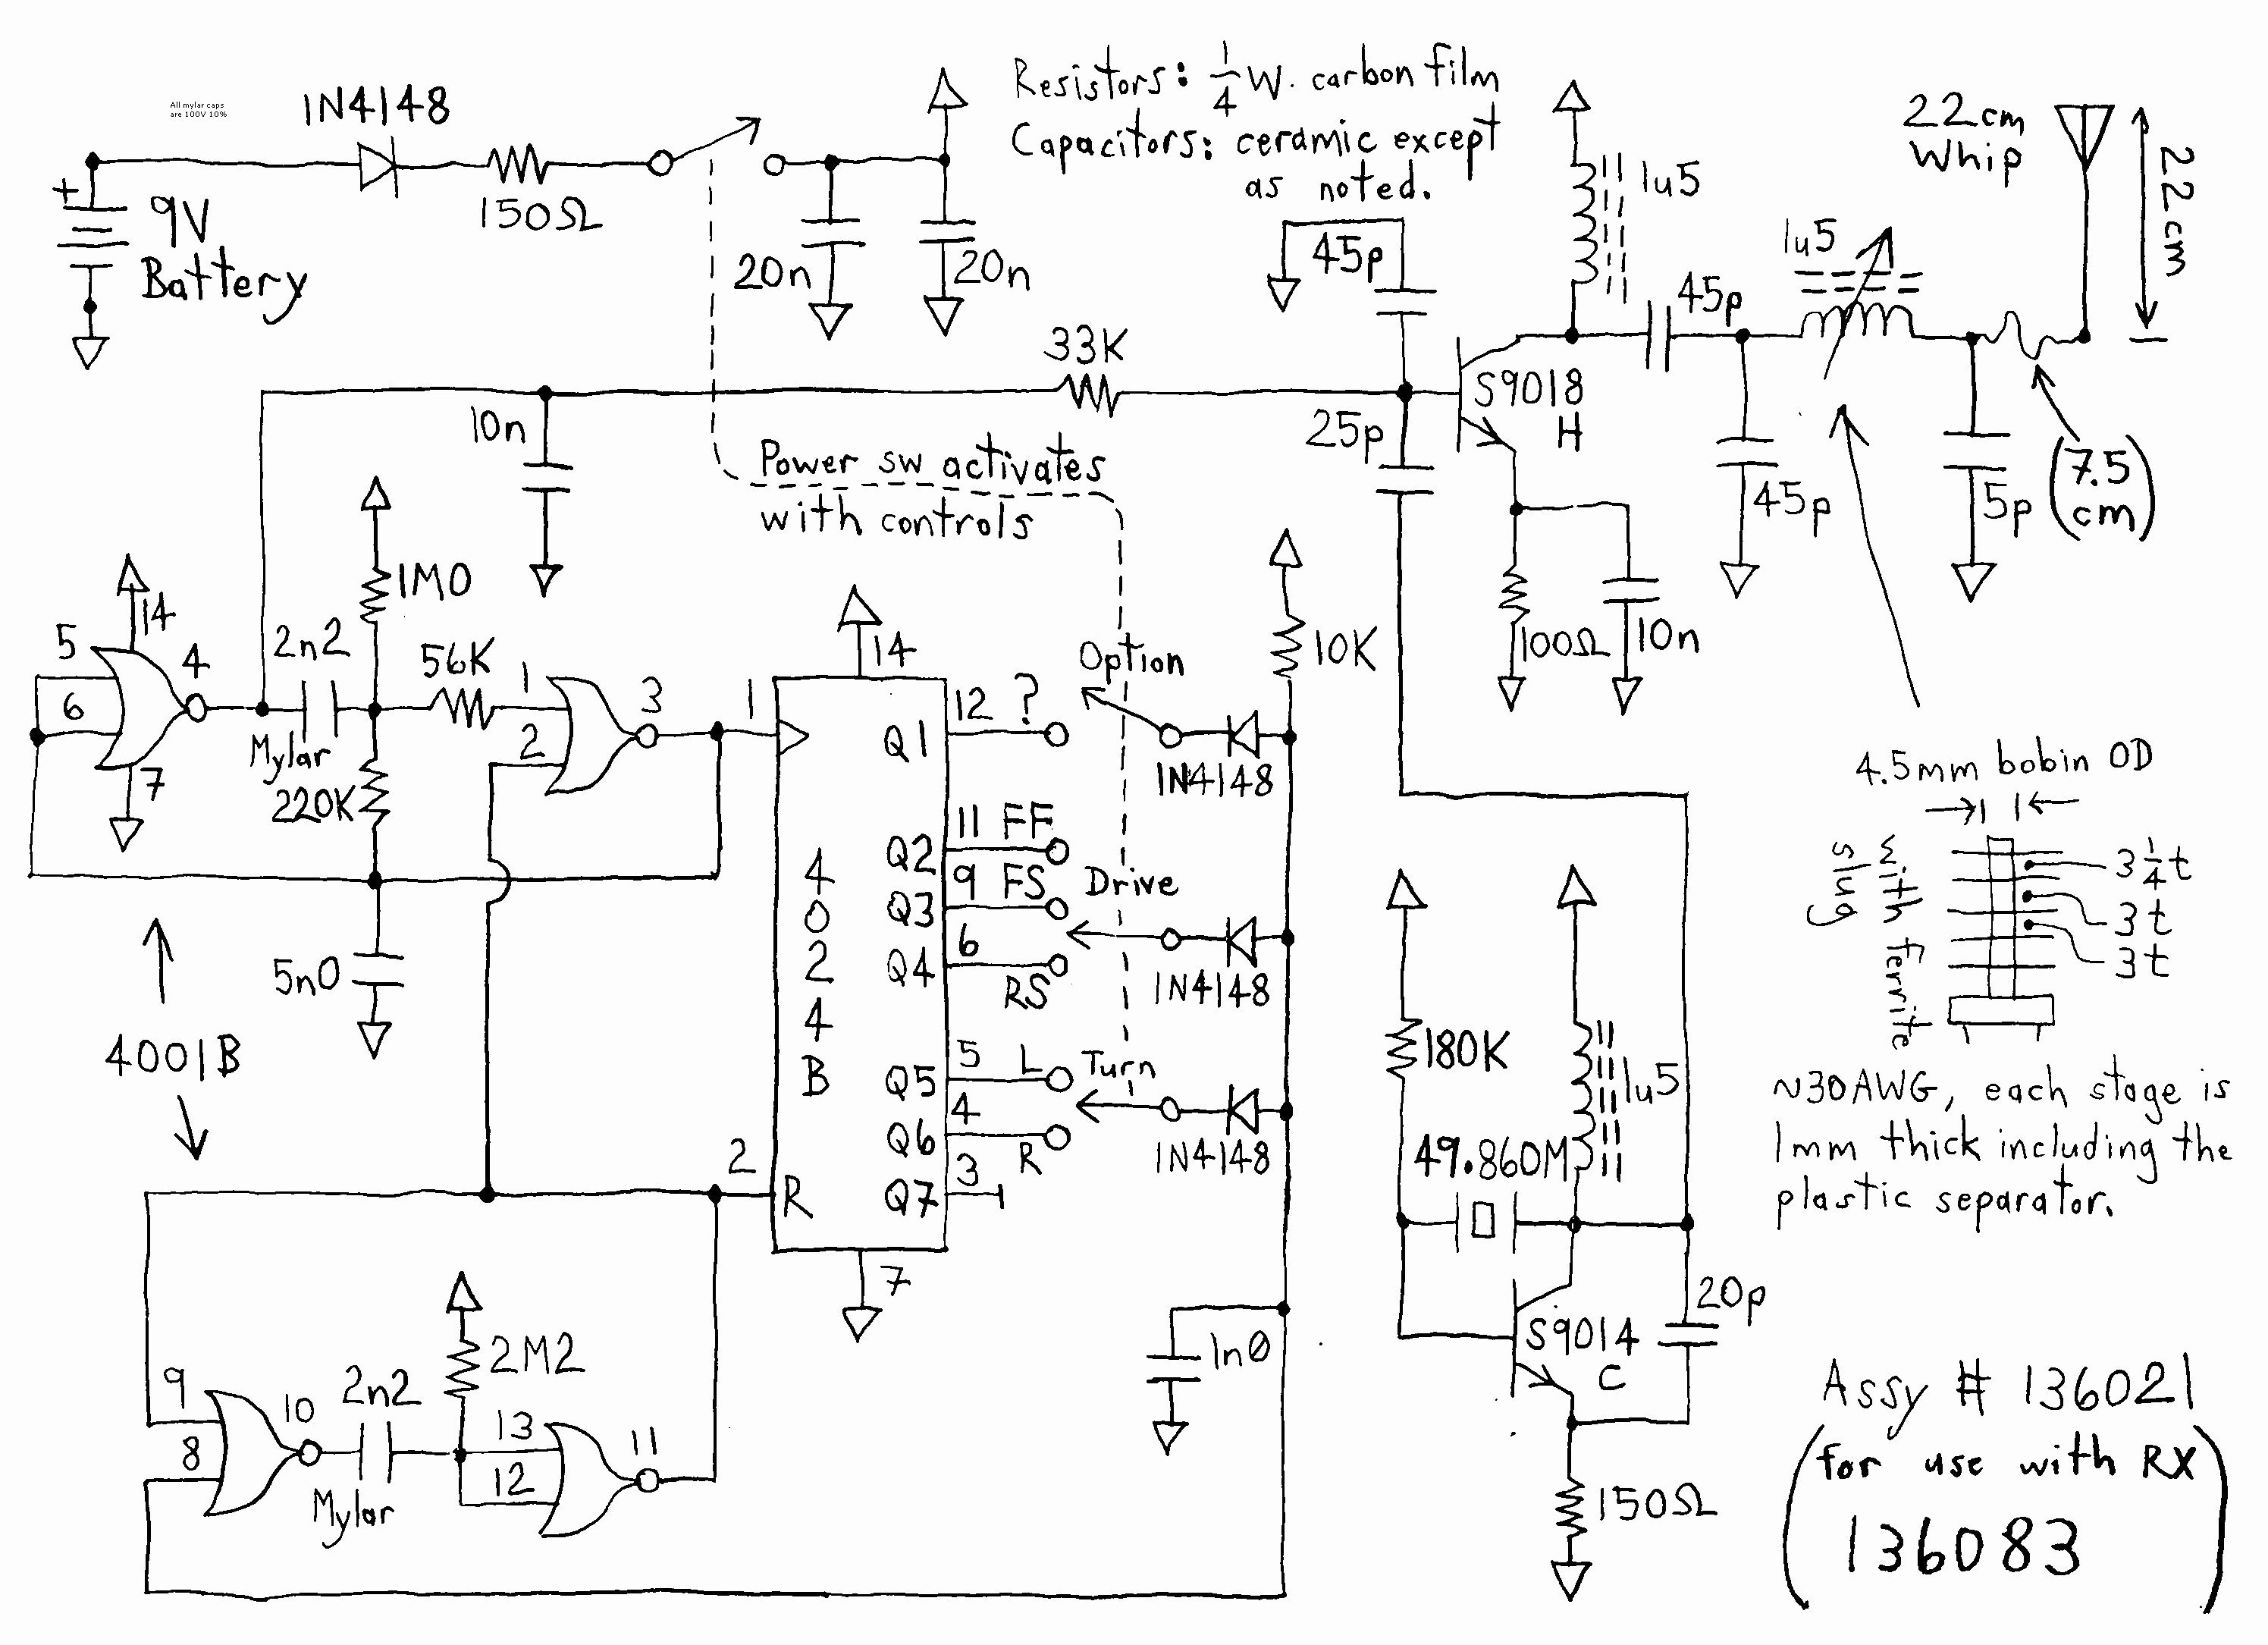 trailer wiring diagram 5 core south africa wiring diagram trailer plug wiring diagram sa 1 Trailer